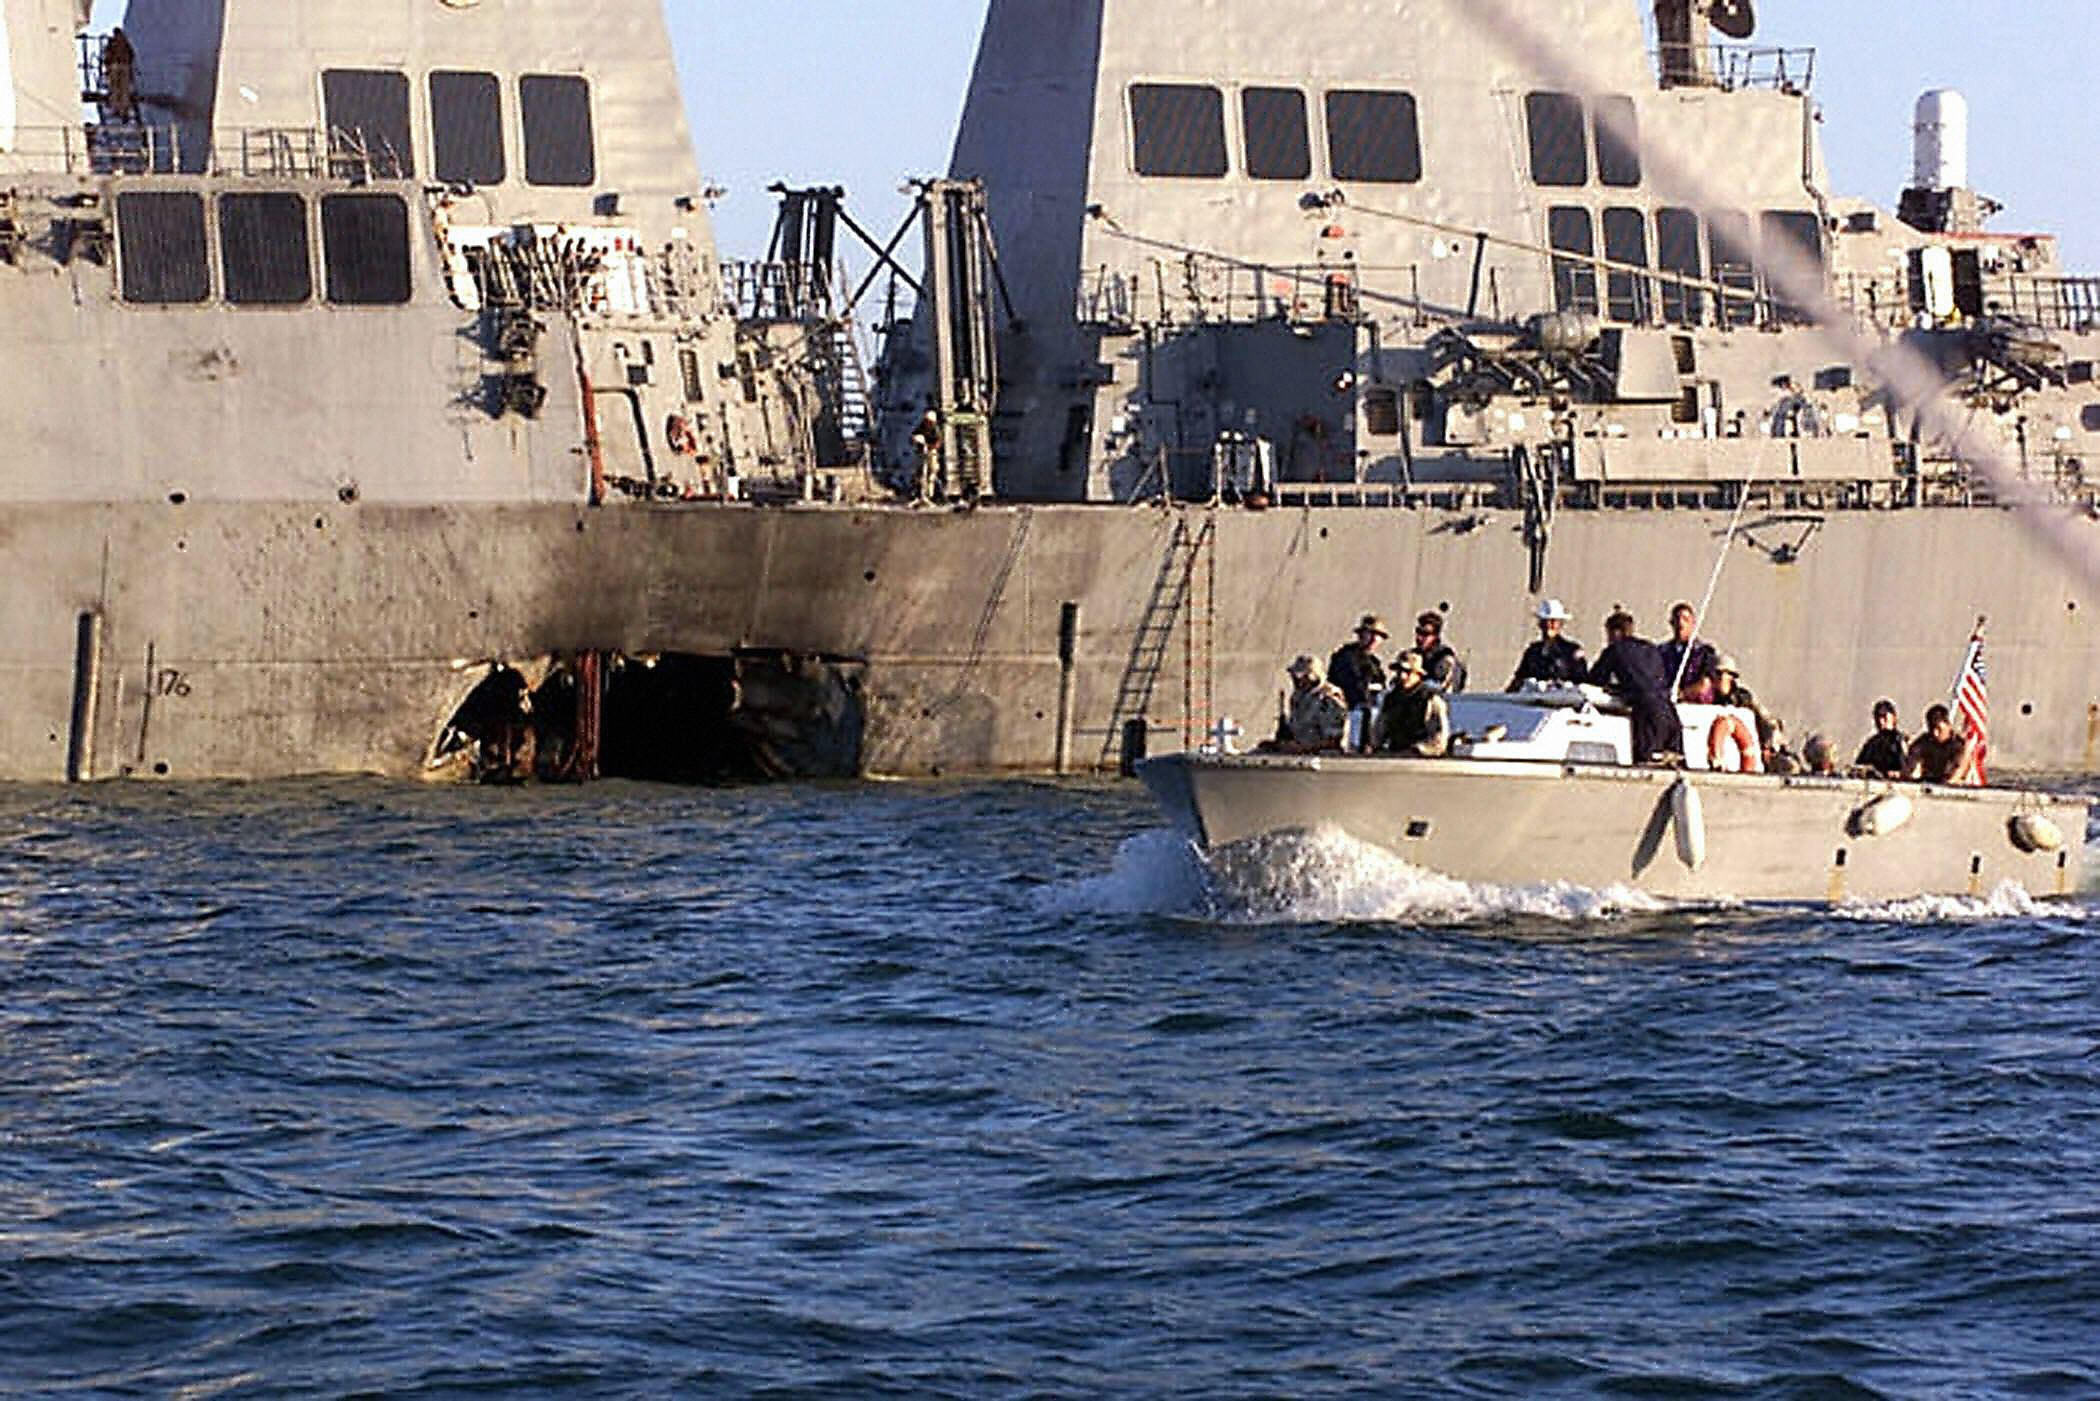 This US Navy file photo shows US Navy and Marine Corps security personnel patrolling past the damaged US Navy destroyer USS Cole 18 October 2000 following the 12 October 2000 terrorist bombing attack on the ship in Aden, Yemen. Abdel Rahim al-Nashiri and Jamal Mohammed al-Bedawi, the two Al-Qaeda suspects convicted for the bombing, were sentenced to death September 29, 2004 by a Yemeni court. Four other suspects were given ten years in prison. (LYLE G. BECKER/AFP/Getty Images)